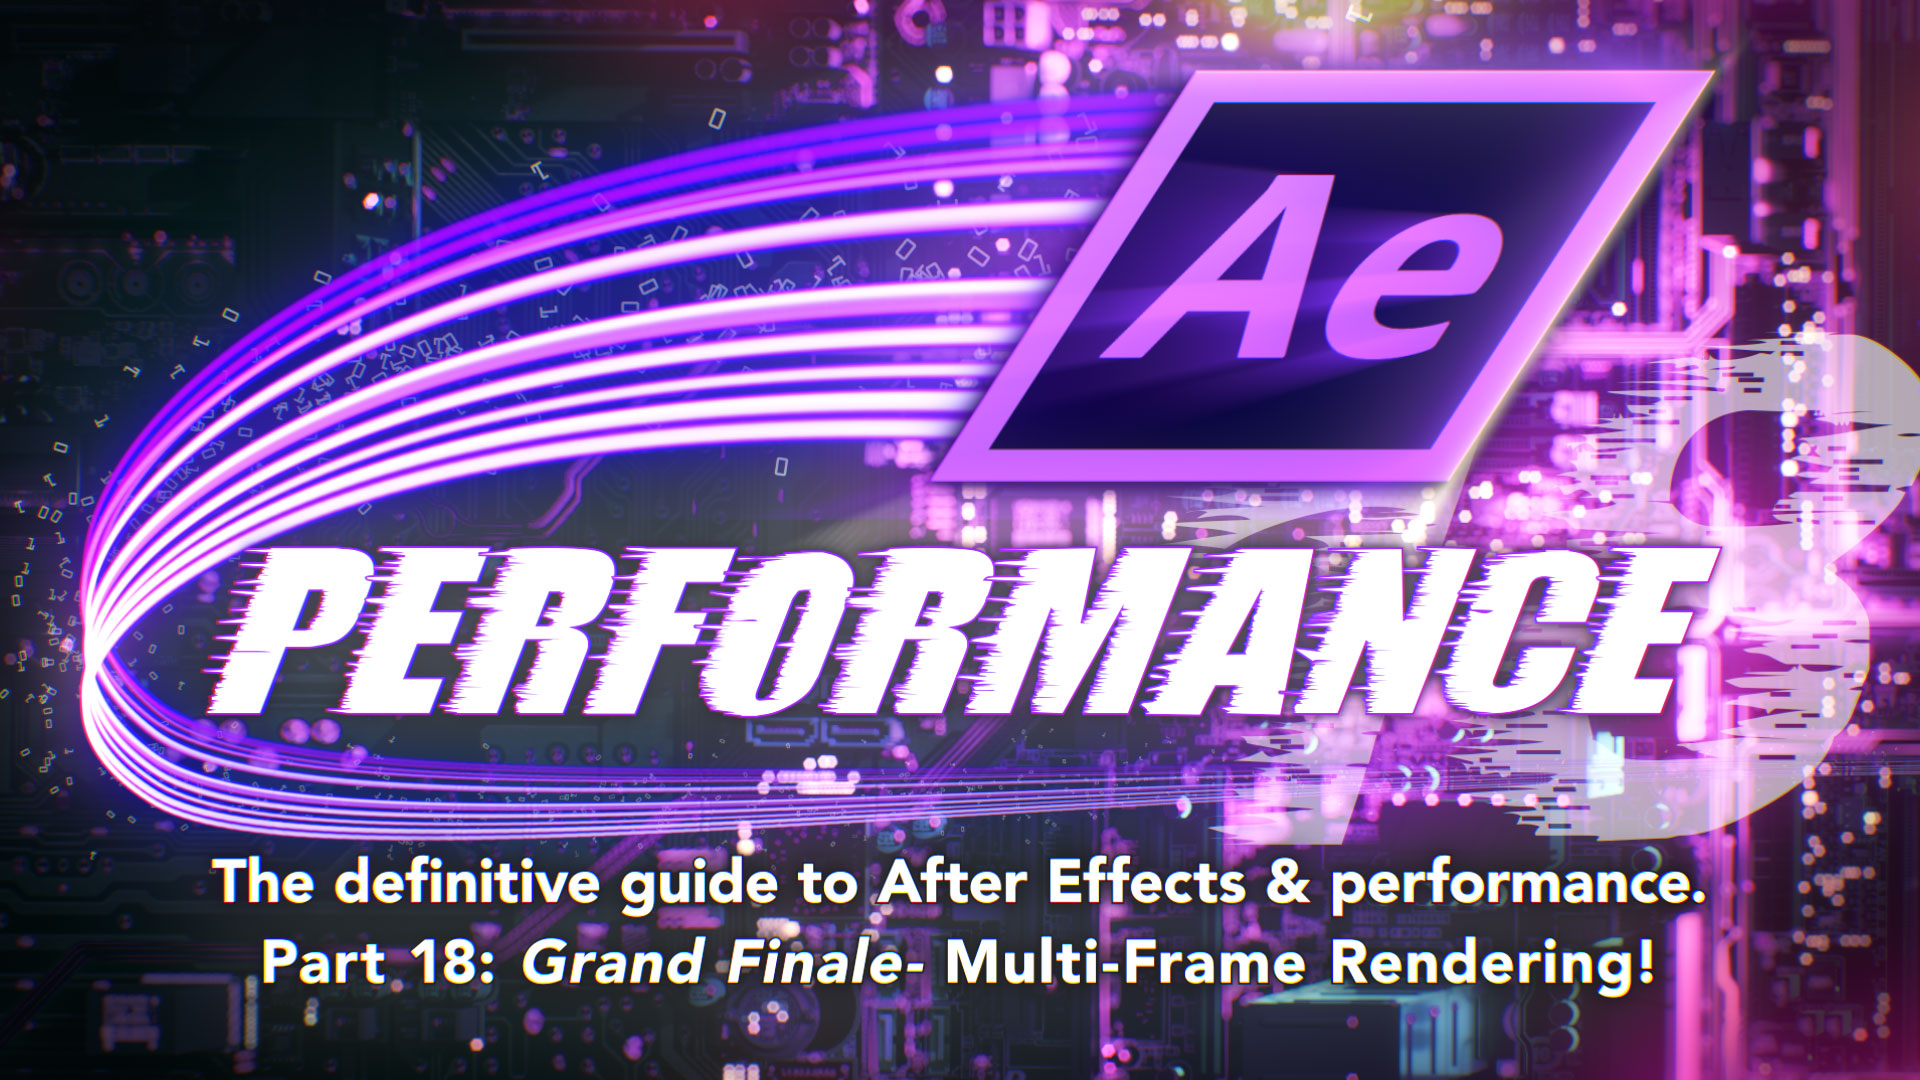 After Effects & Performance. Part 18: Multi-Frame Rendering is here 4